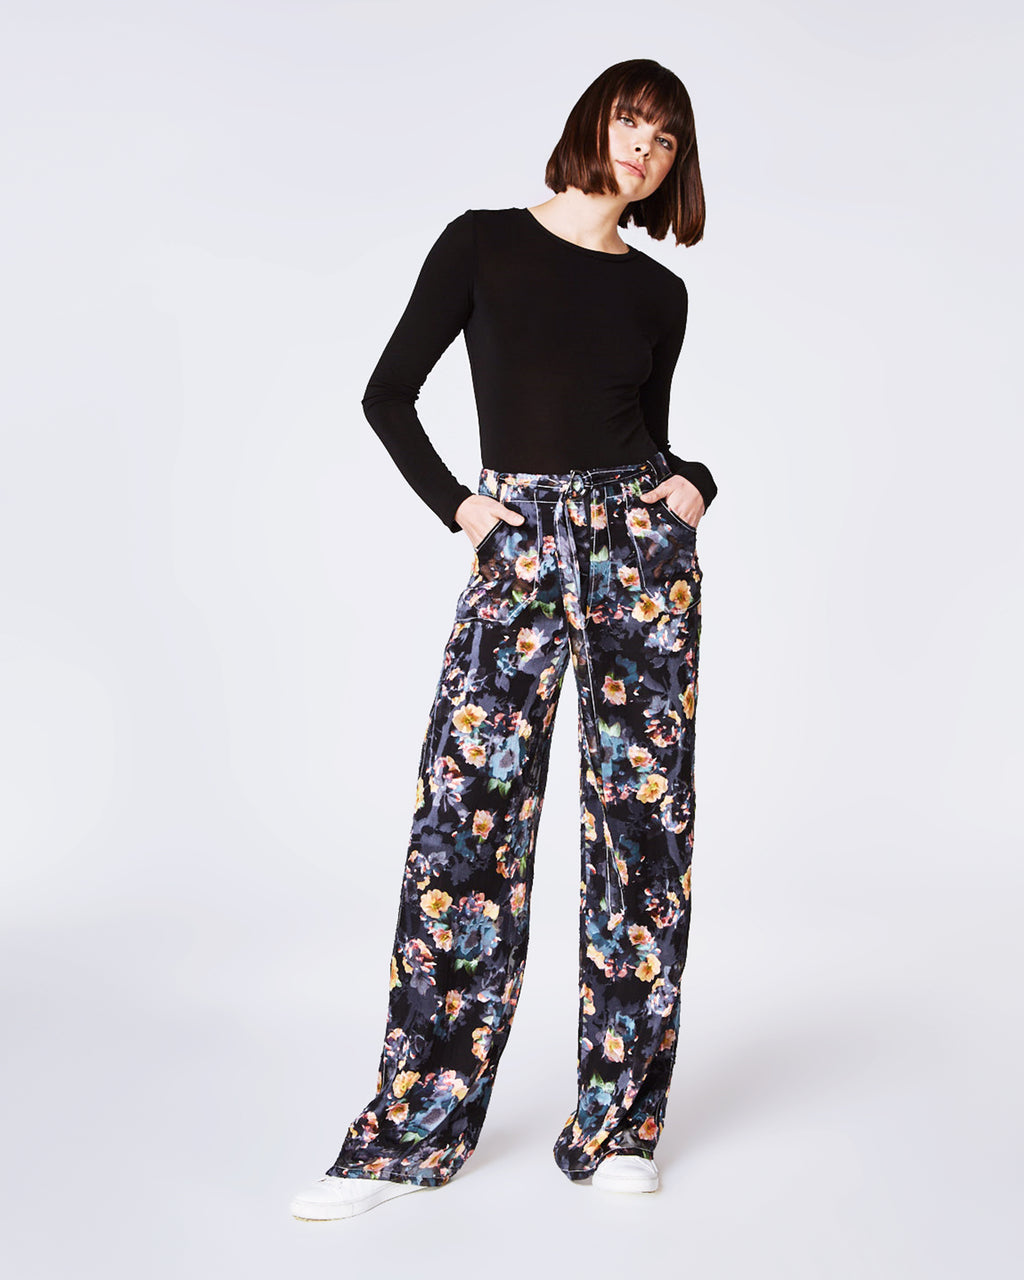 BP10245 - VINTAGE FLORAL BURNOUT PANT - bottoms - pants - YOUR PANTS ARE BLOOMING. THESE PANTS SHOWCASE OUR VINTAGE FLORAL BURNOUT PRINT AND A WIDE LEG. PAIR WITH HEELED BOOTIES AND A SILK TOP. FRONT ZIPPER FOR CLOSURE, FULLY LINED.